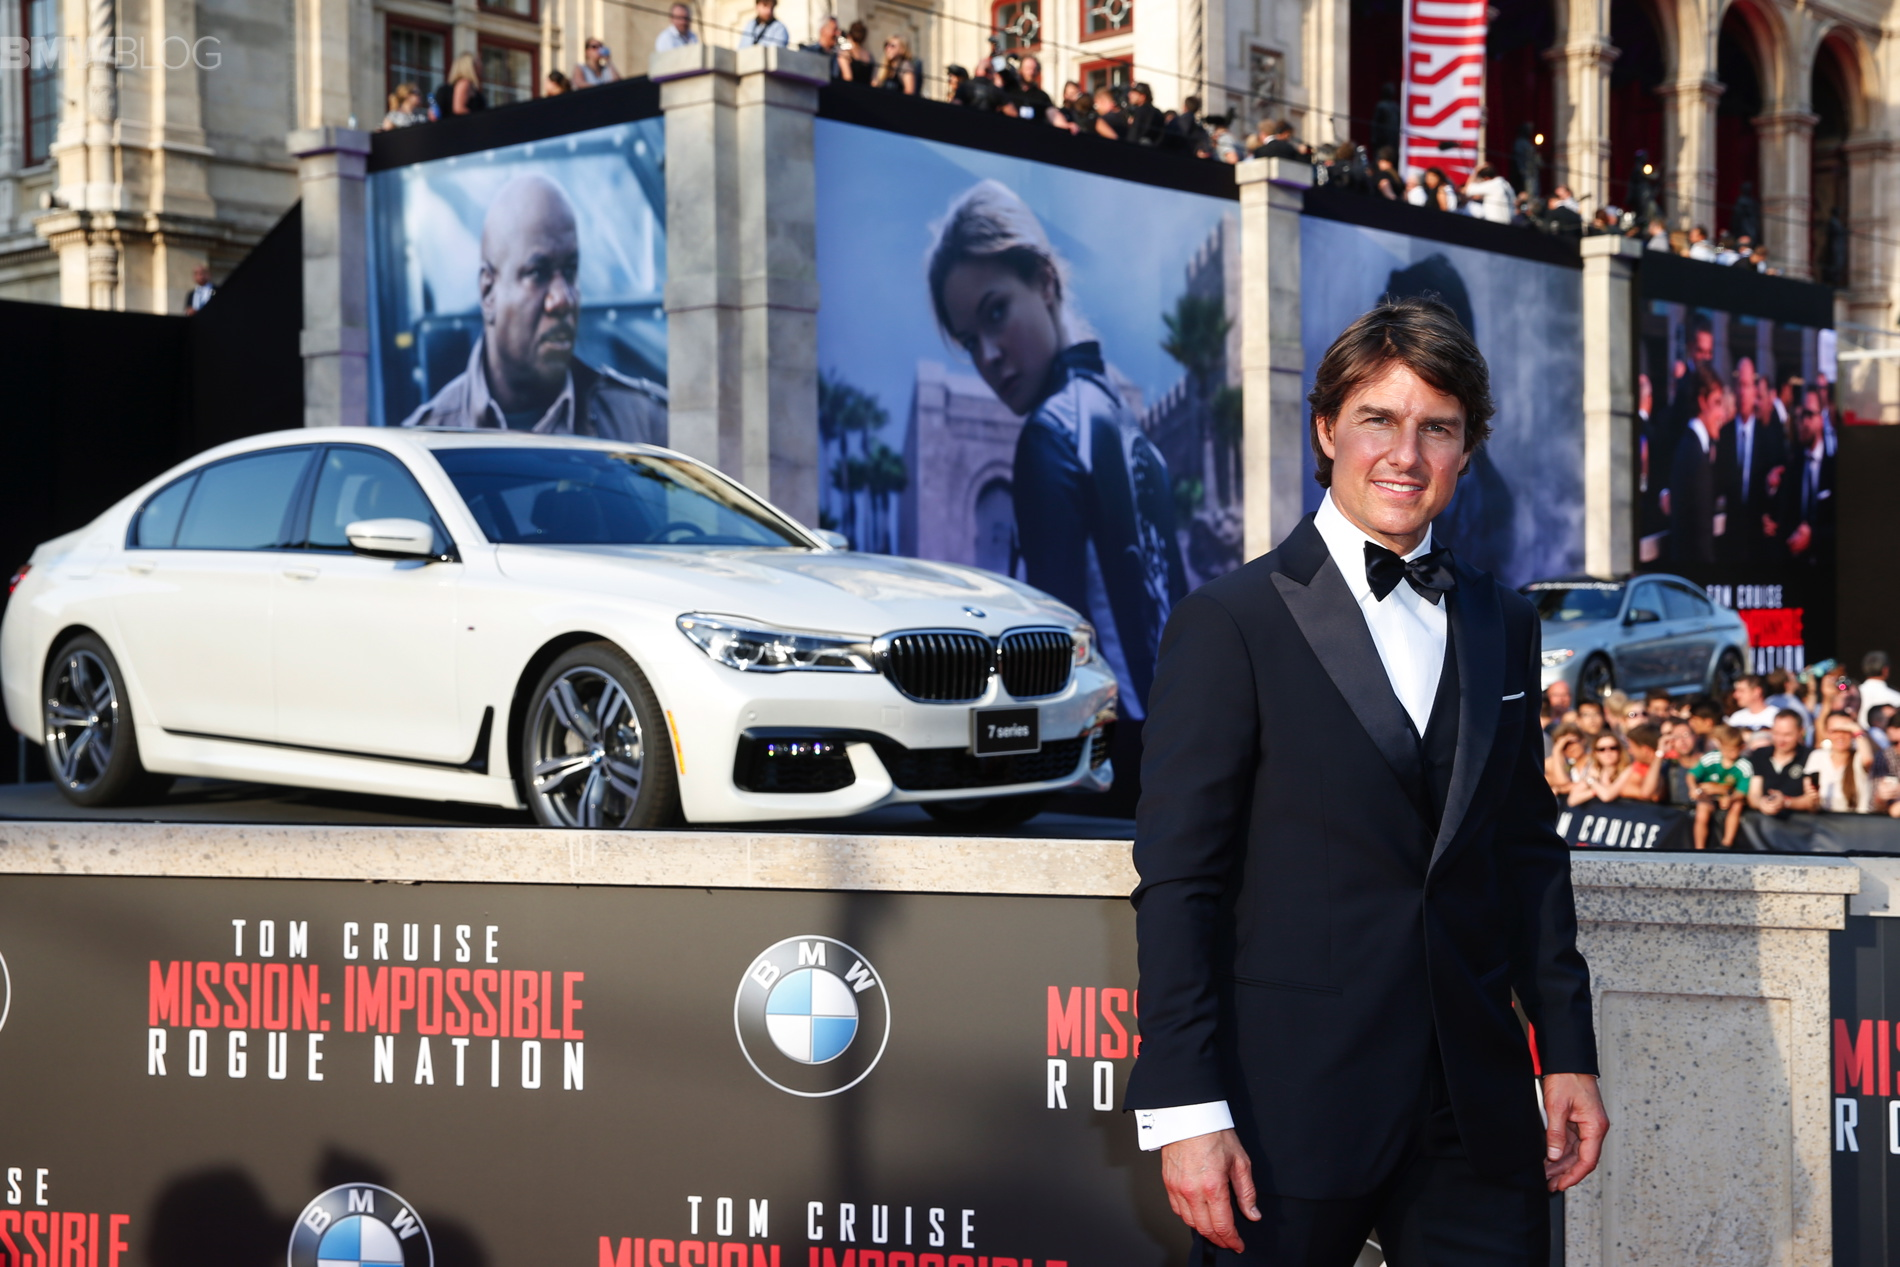 mission impossible rogue nation BMW images 22